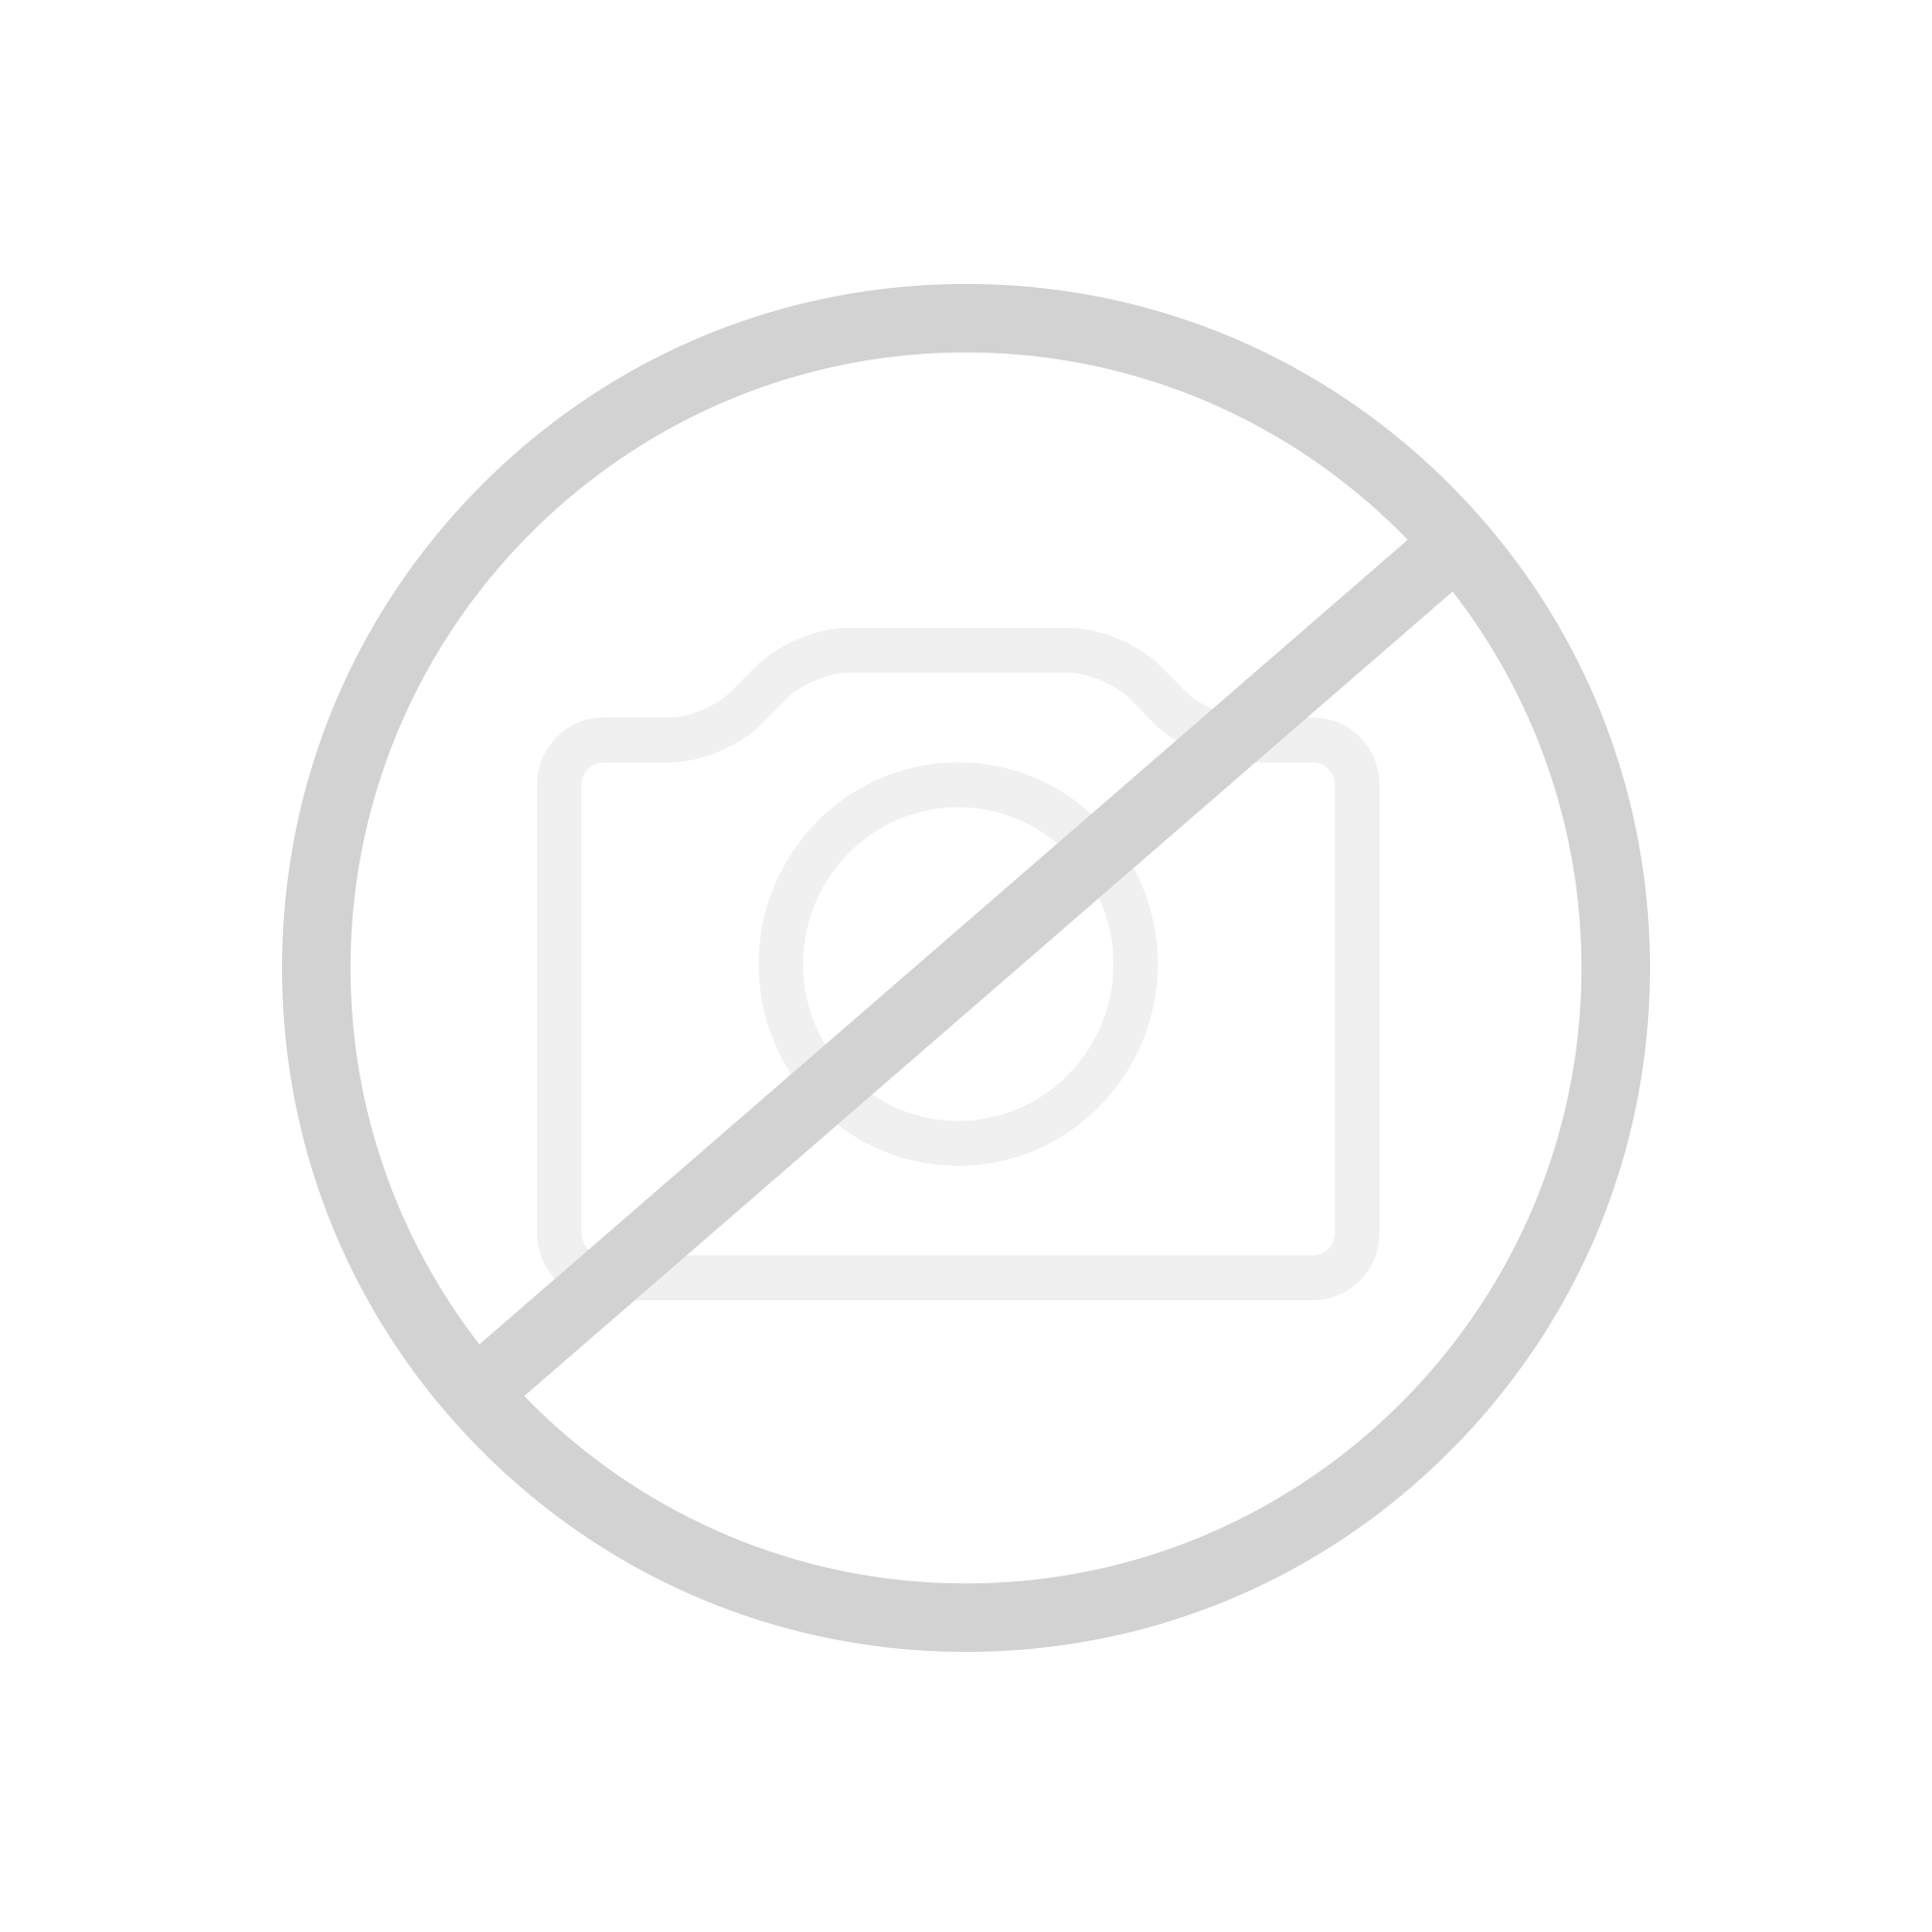 riho badewanne duschwanne und whirlpool online bestellen. Black Bedroom Furniture Sets. Home Design Ideas